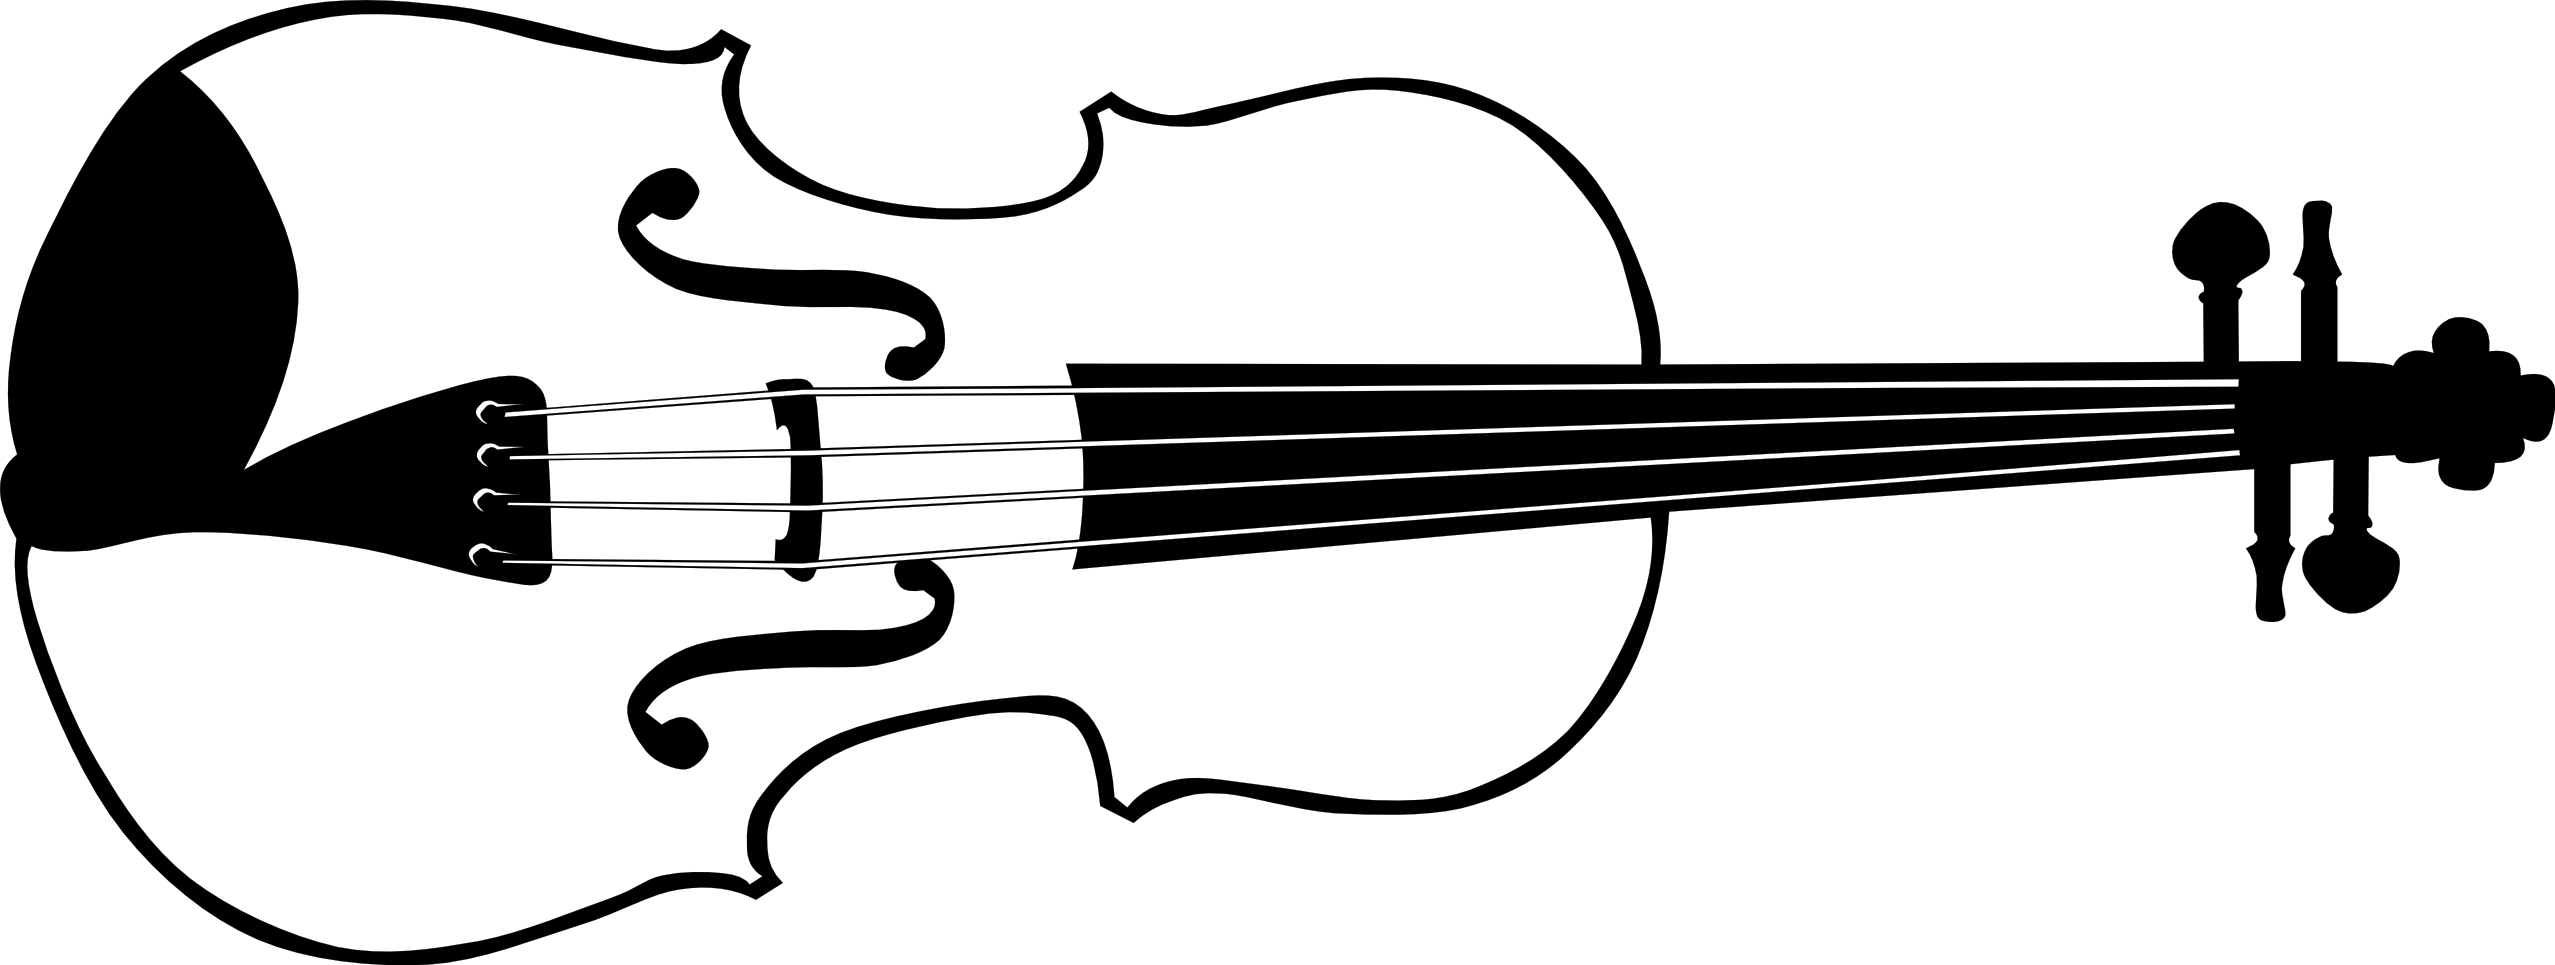 Free Violin Black And White, Download Free Clip Art, Free.